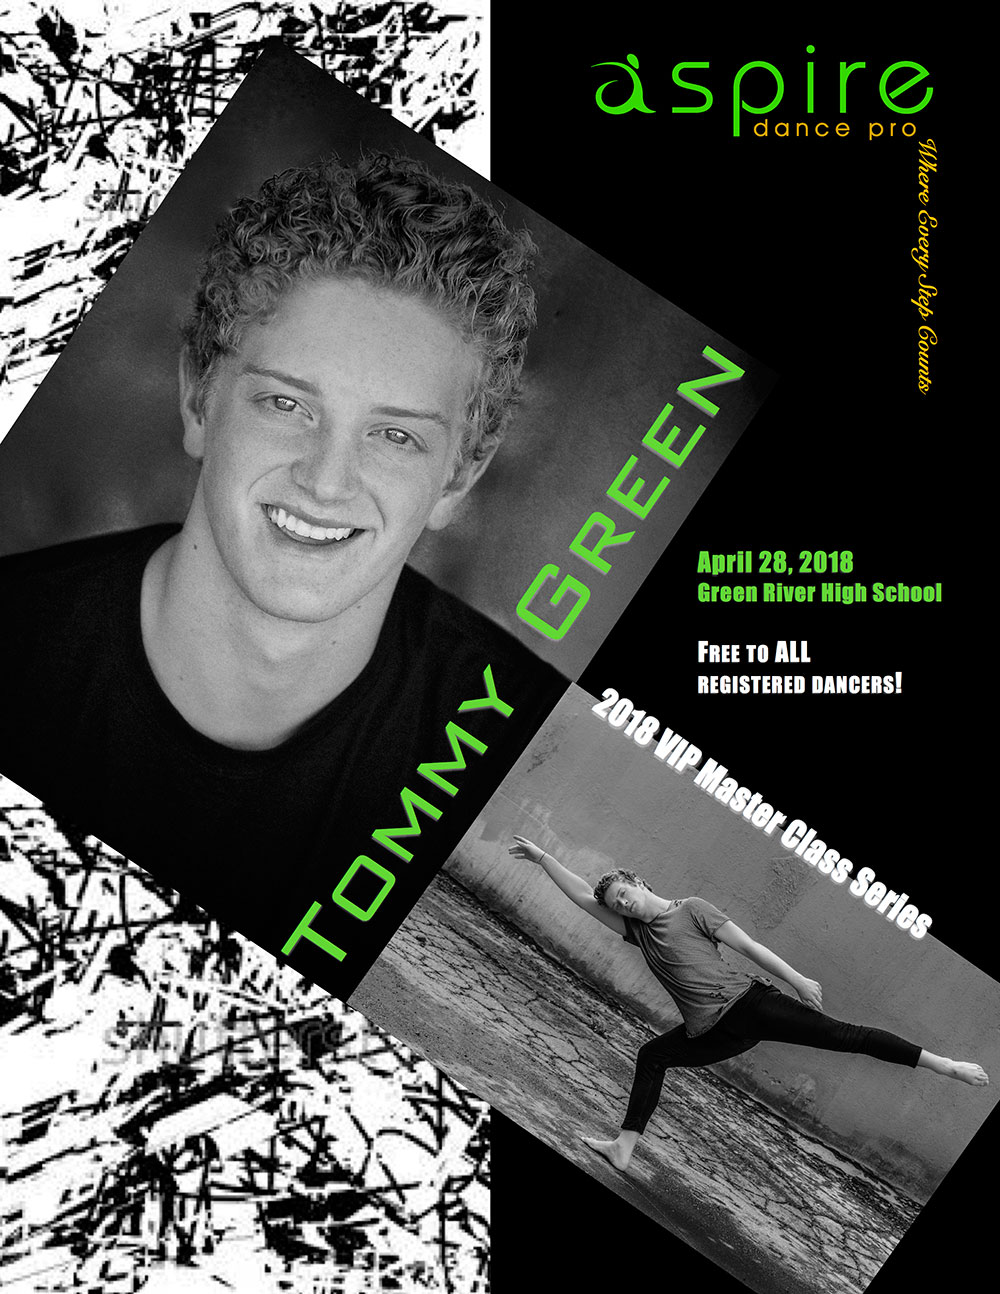 Tommy Green - Aspire Dance Pro Competitions Masterclass Instructor